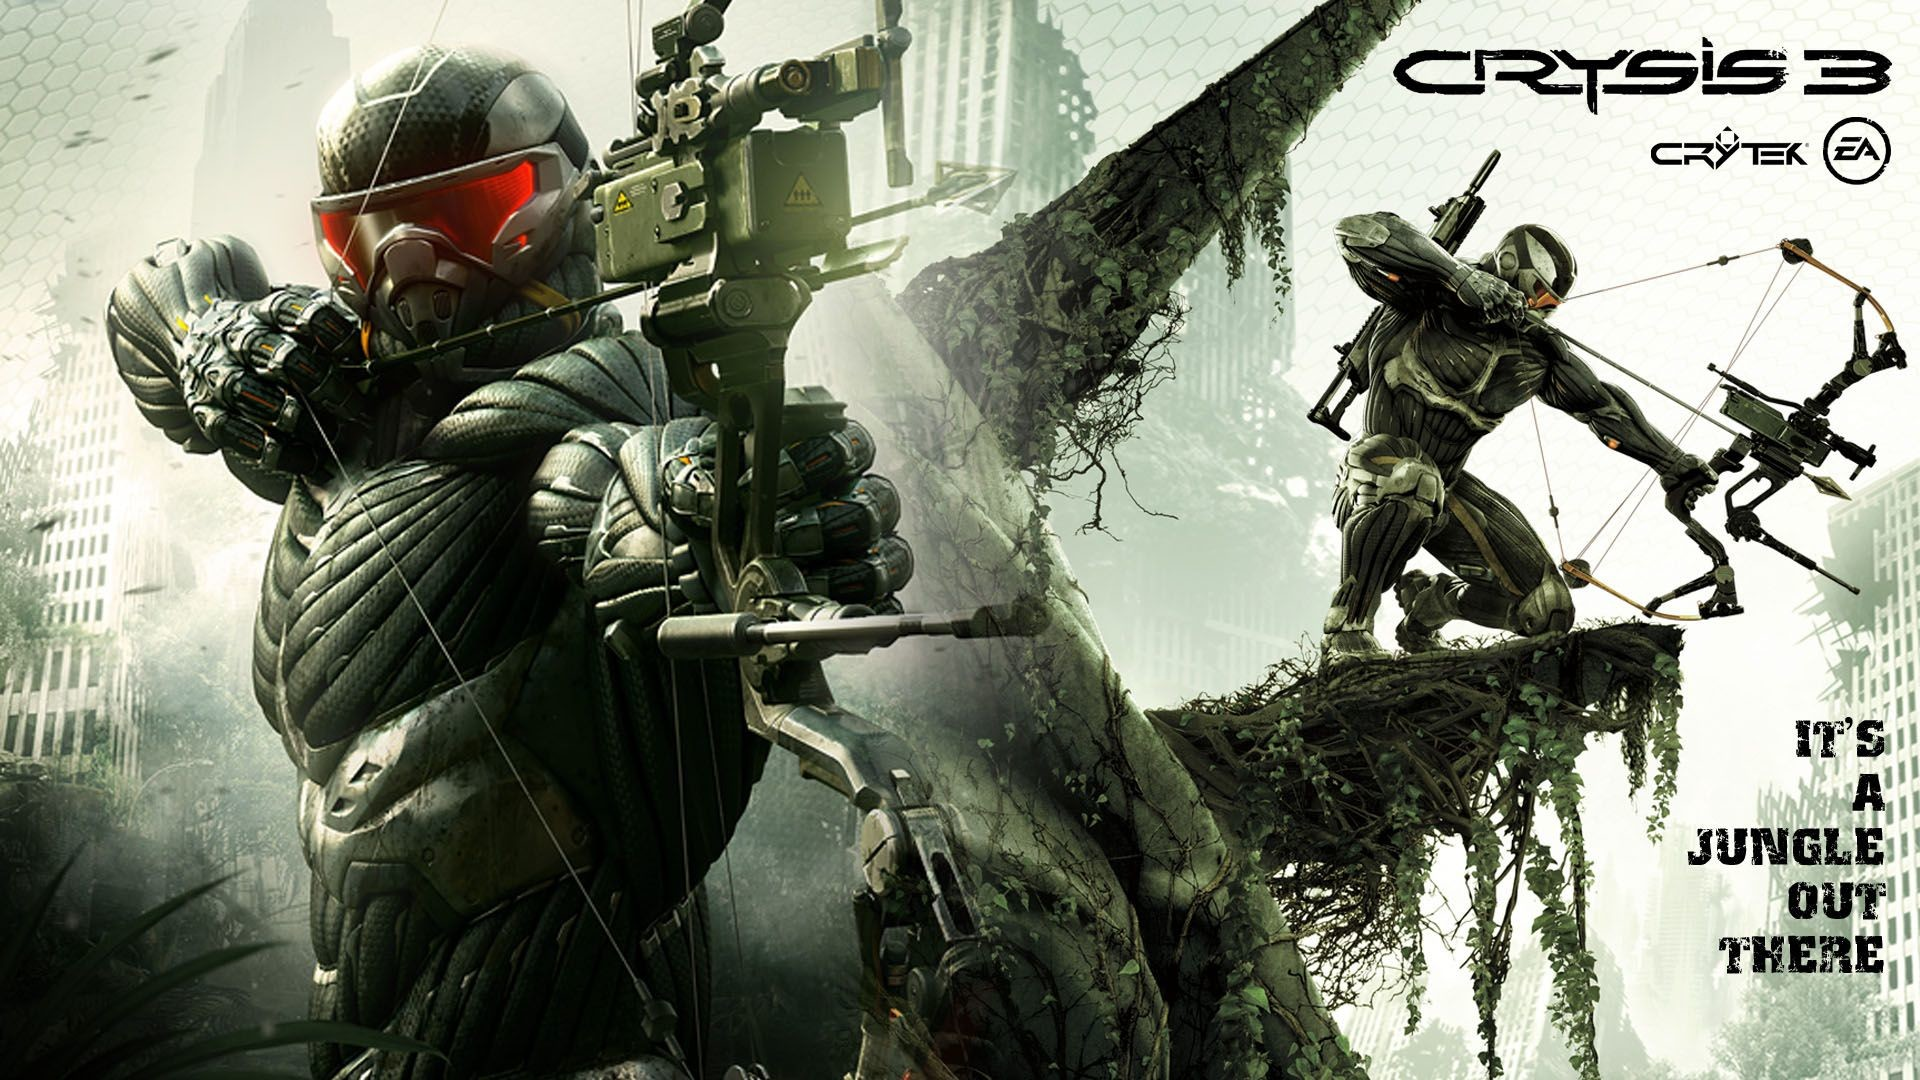 1920x1080 Crysis 3 Full HD Wallpaper Pack ~ GAME RIPS Arena